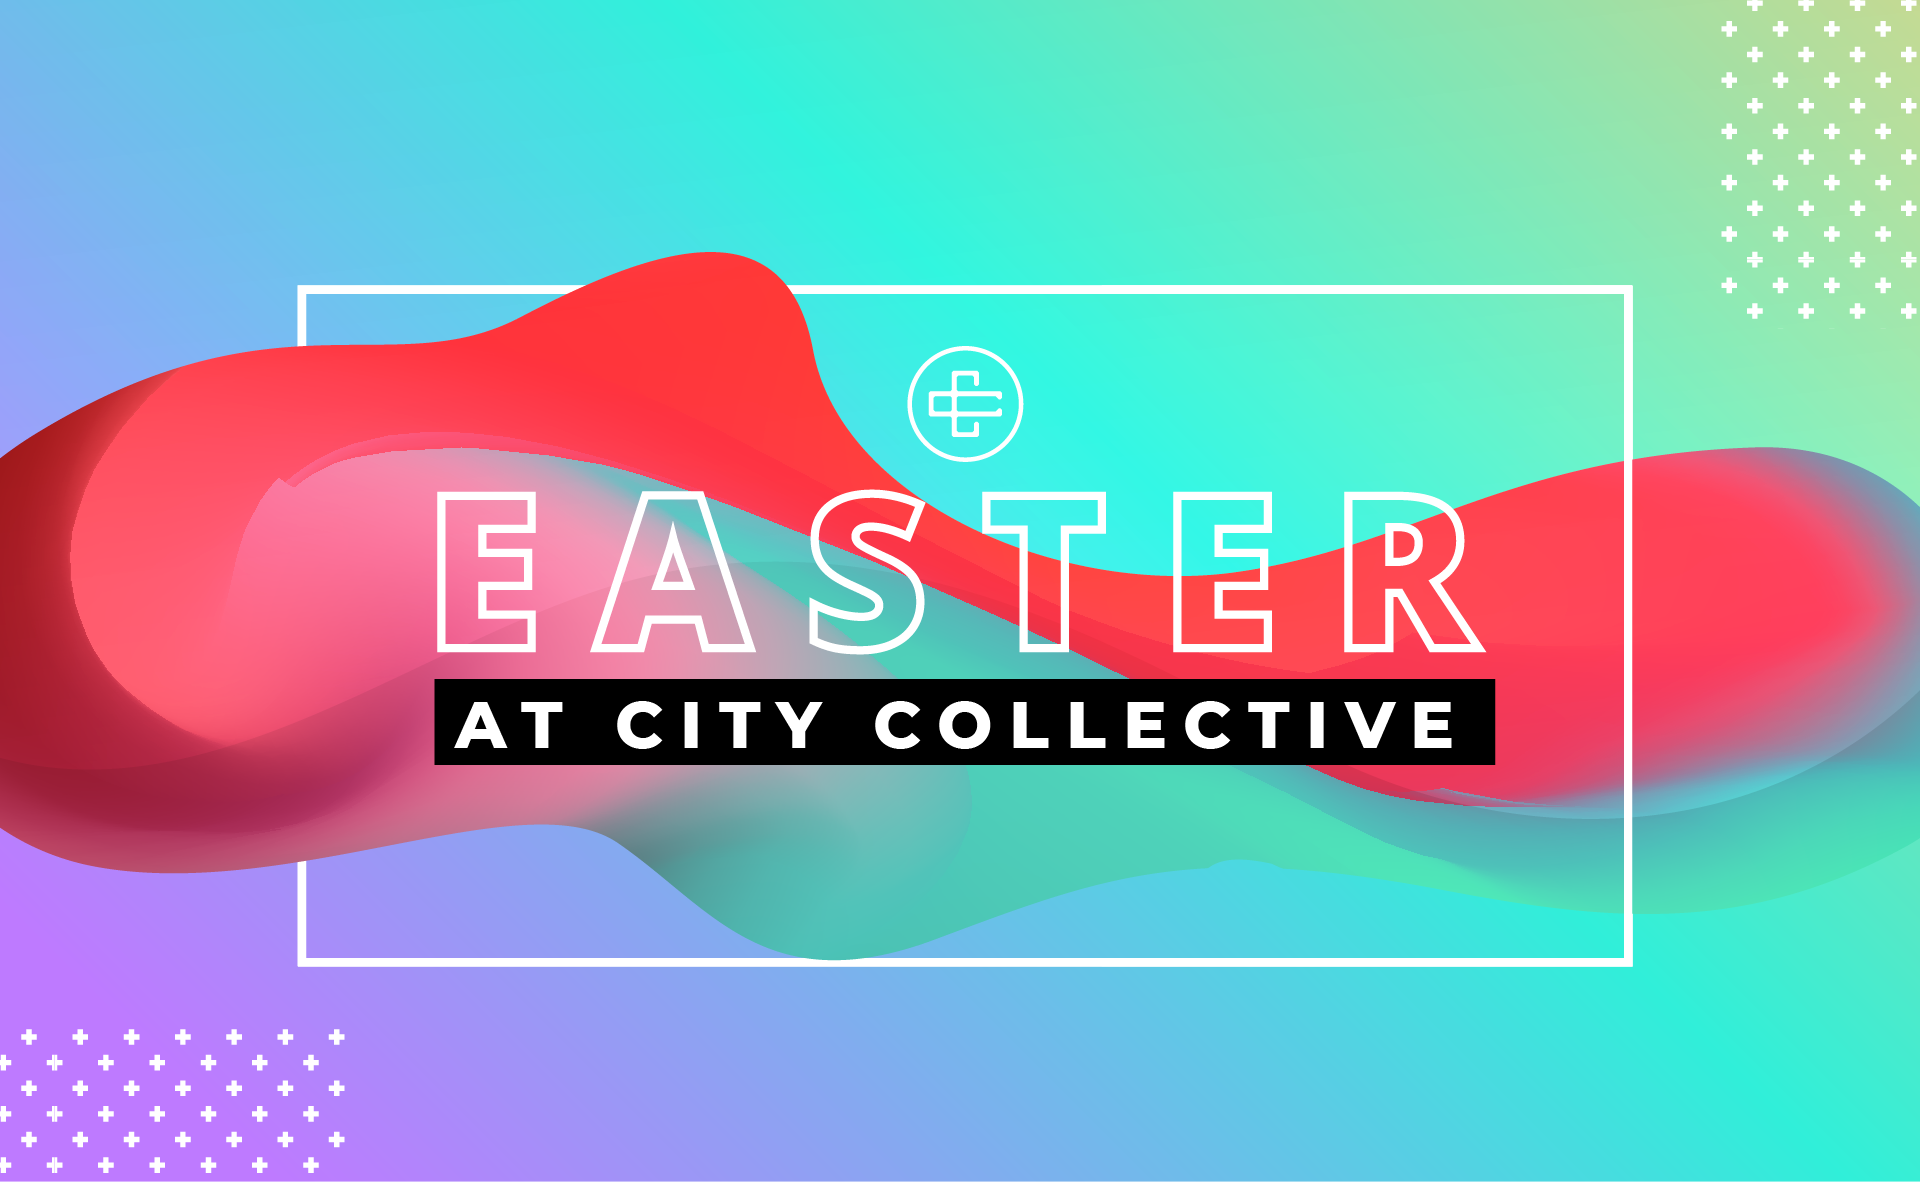 Easter at City Collective